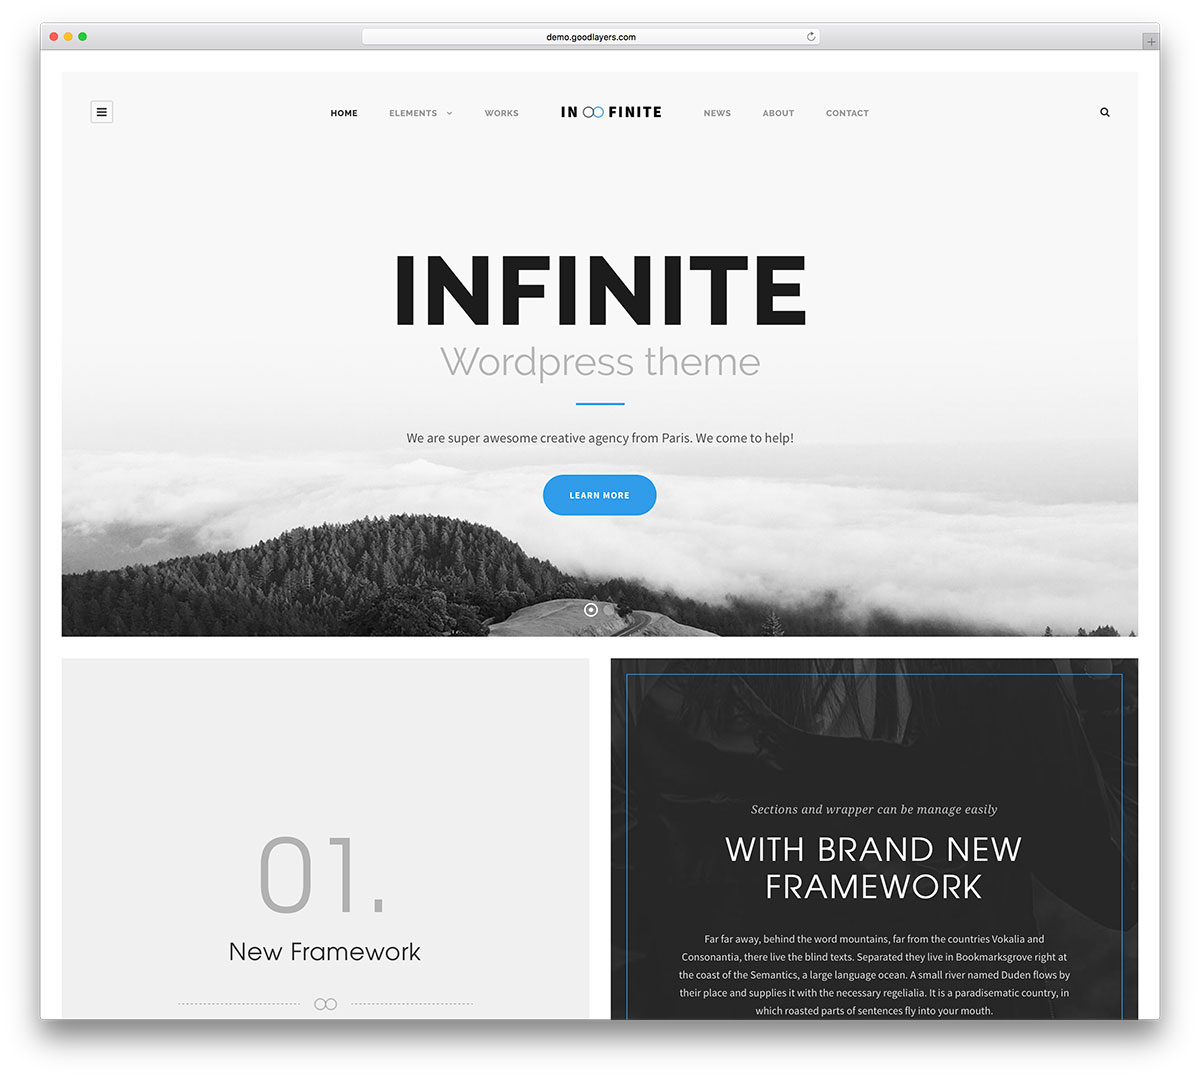 30 clean and simple wordpress themes 2018 colorlib for What wordpress template is this